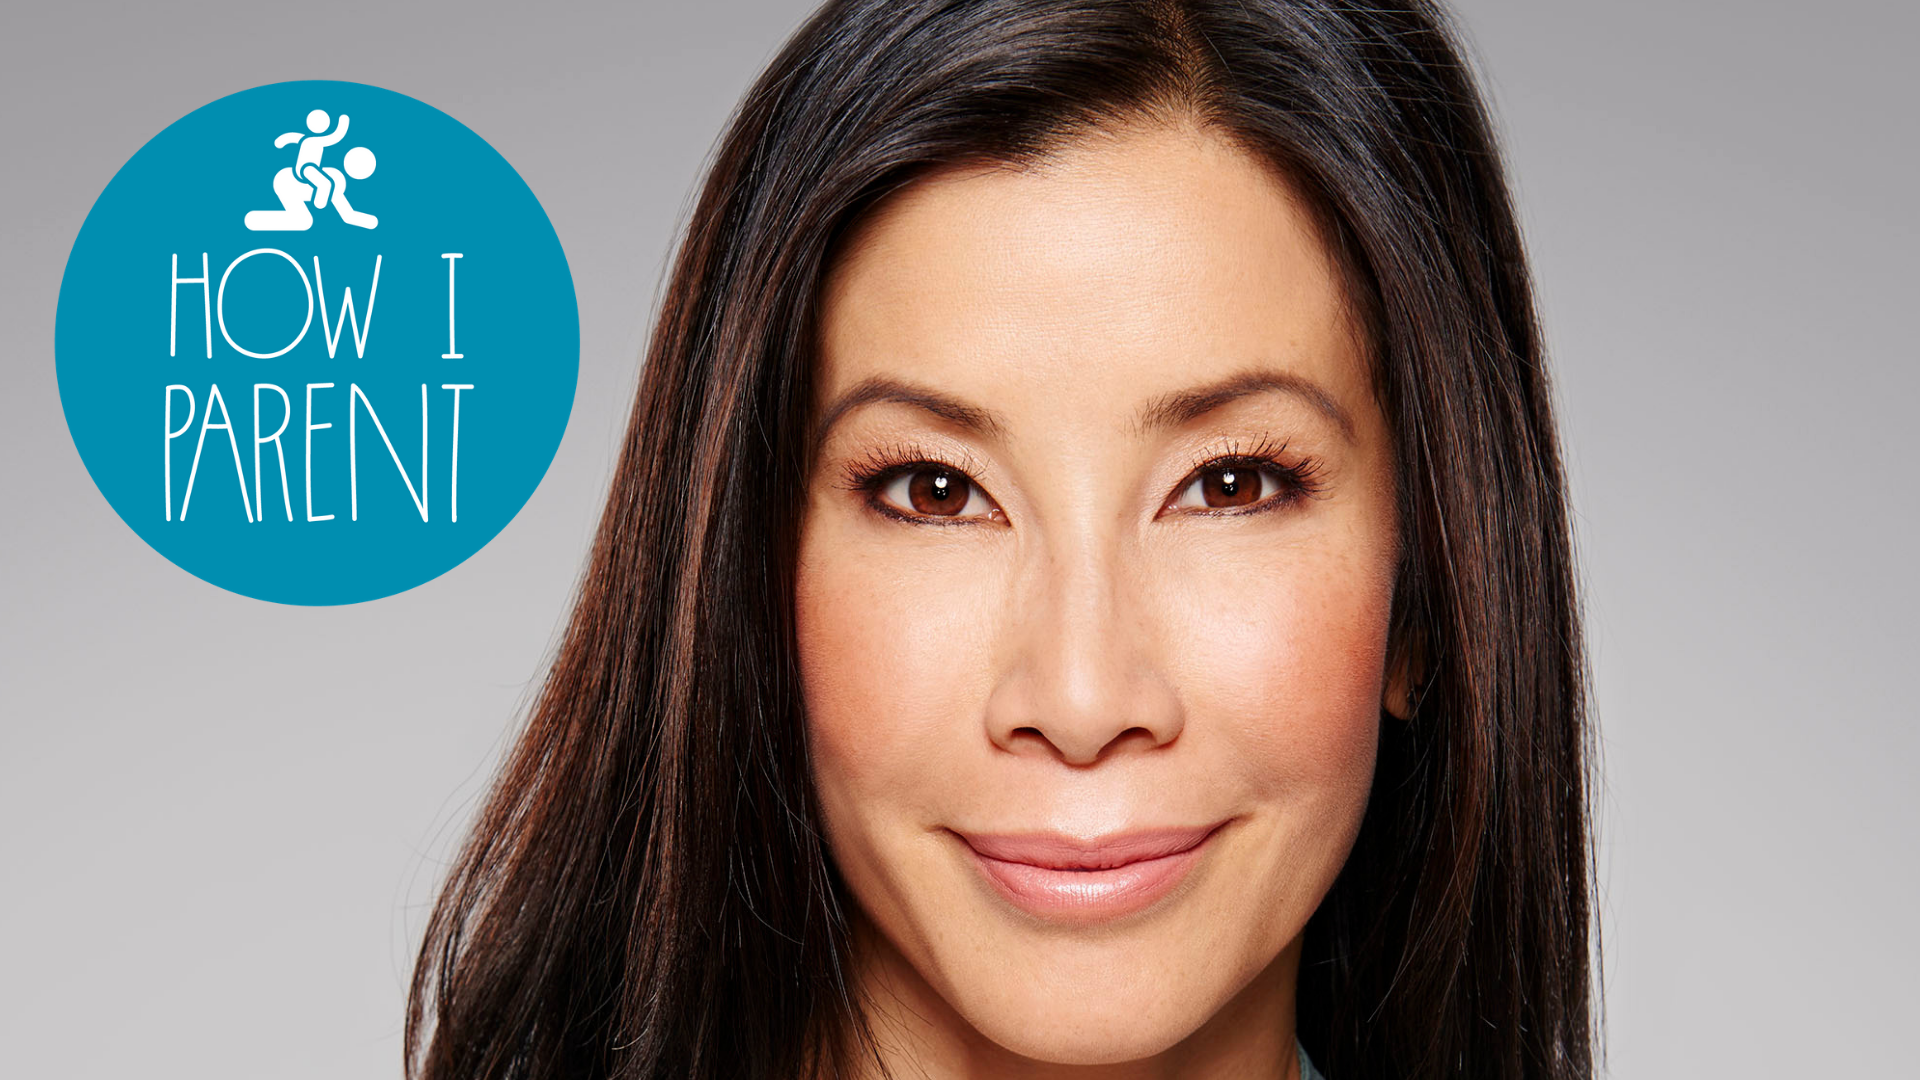 I'm CNN Host Lisa Ling, And This Is How I Parent